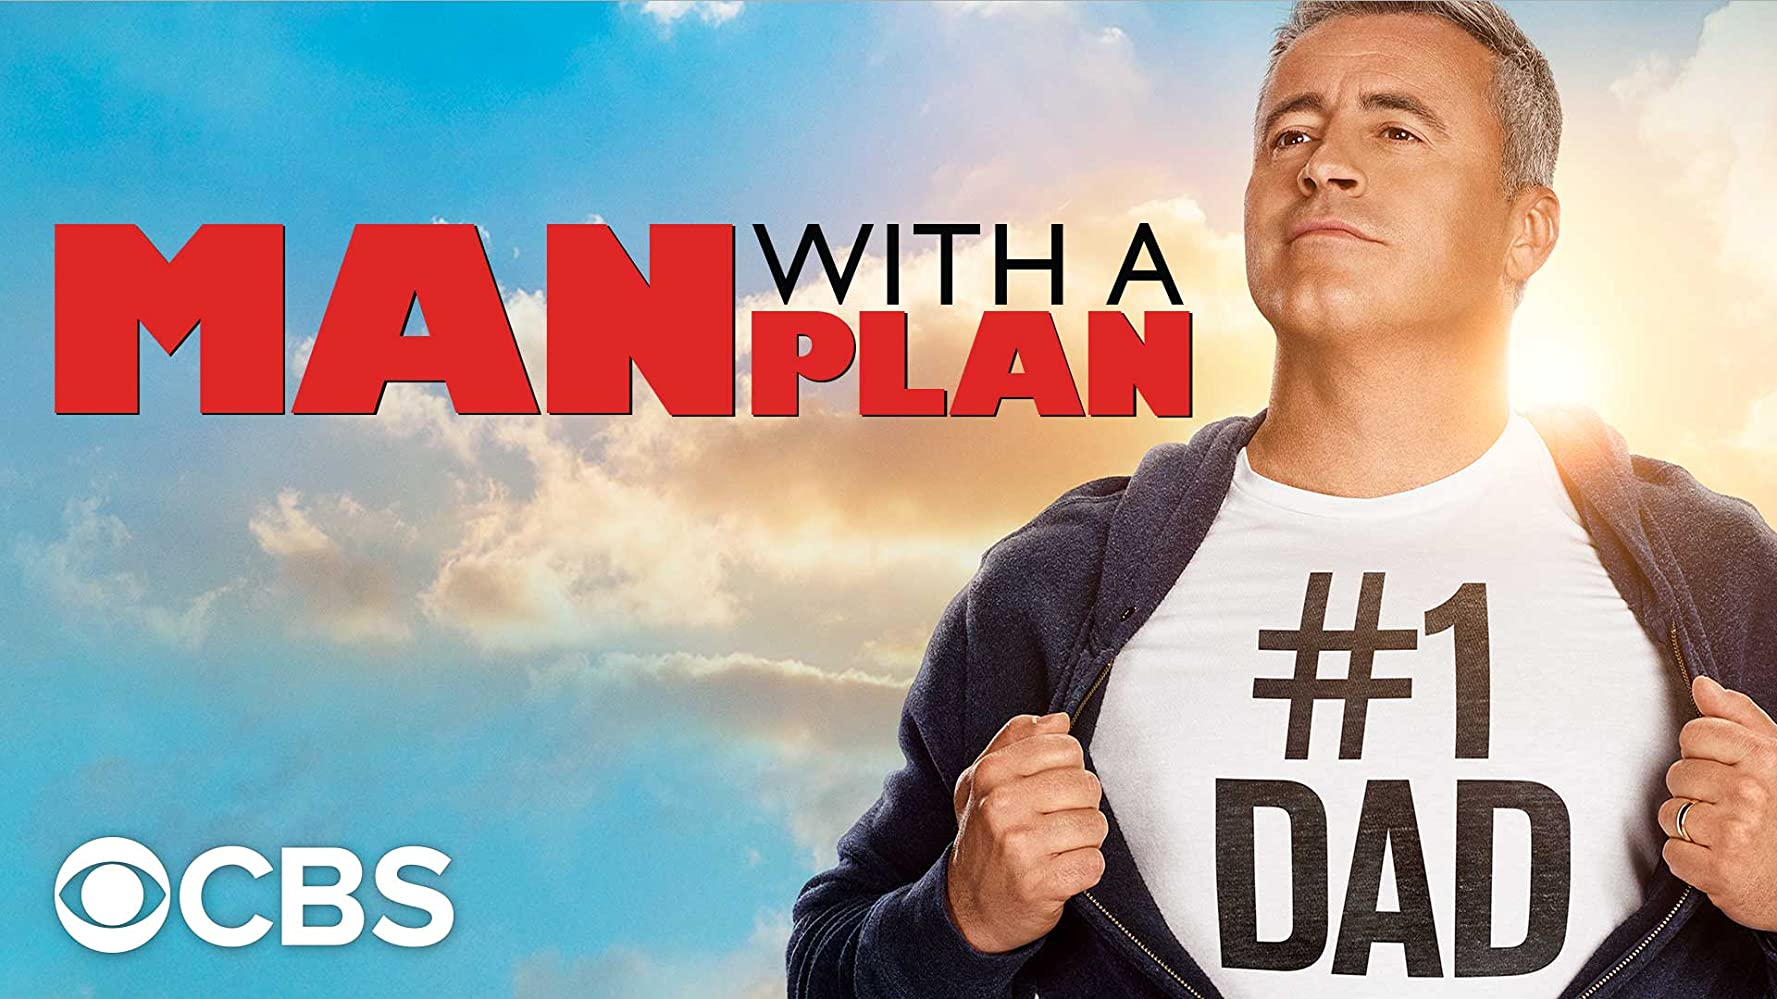 man with a plan - February 2019 top tv series premier dates, trailers and stories.